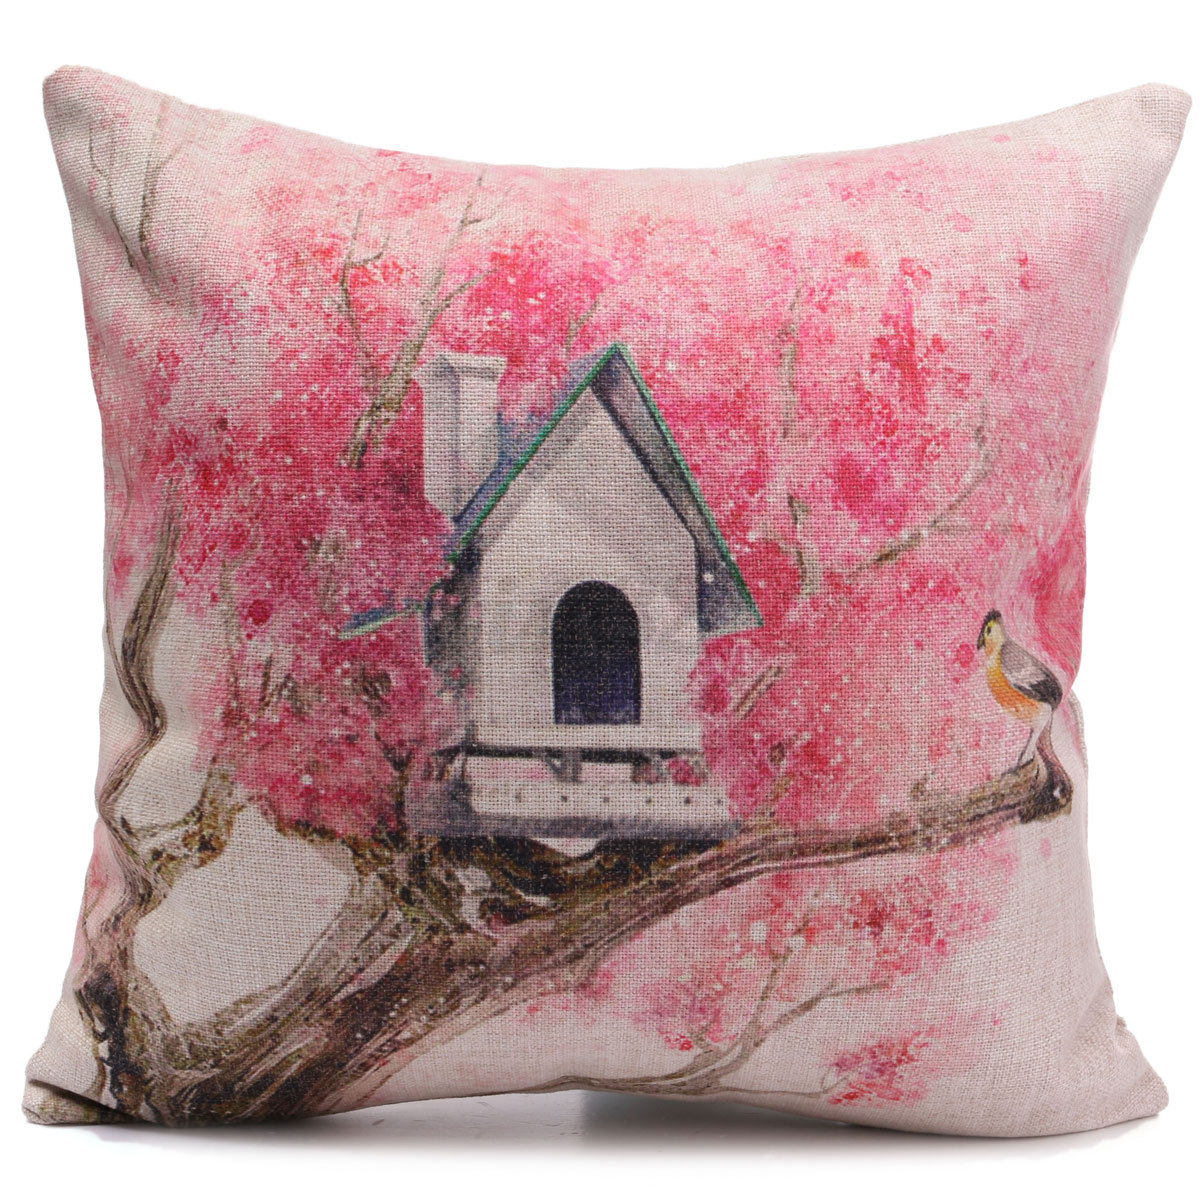 Throw Pillow Bed : Cotton Linen Forest Throw Pillow Case Cover Bed Sofa Pack Cushion Home Decor eBay